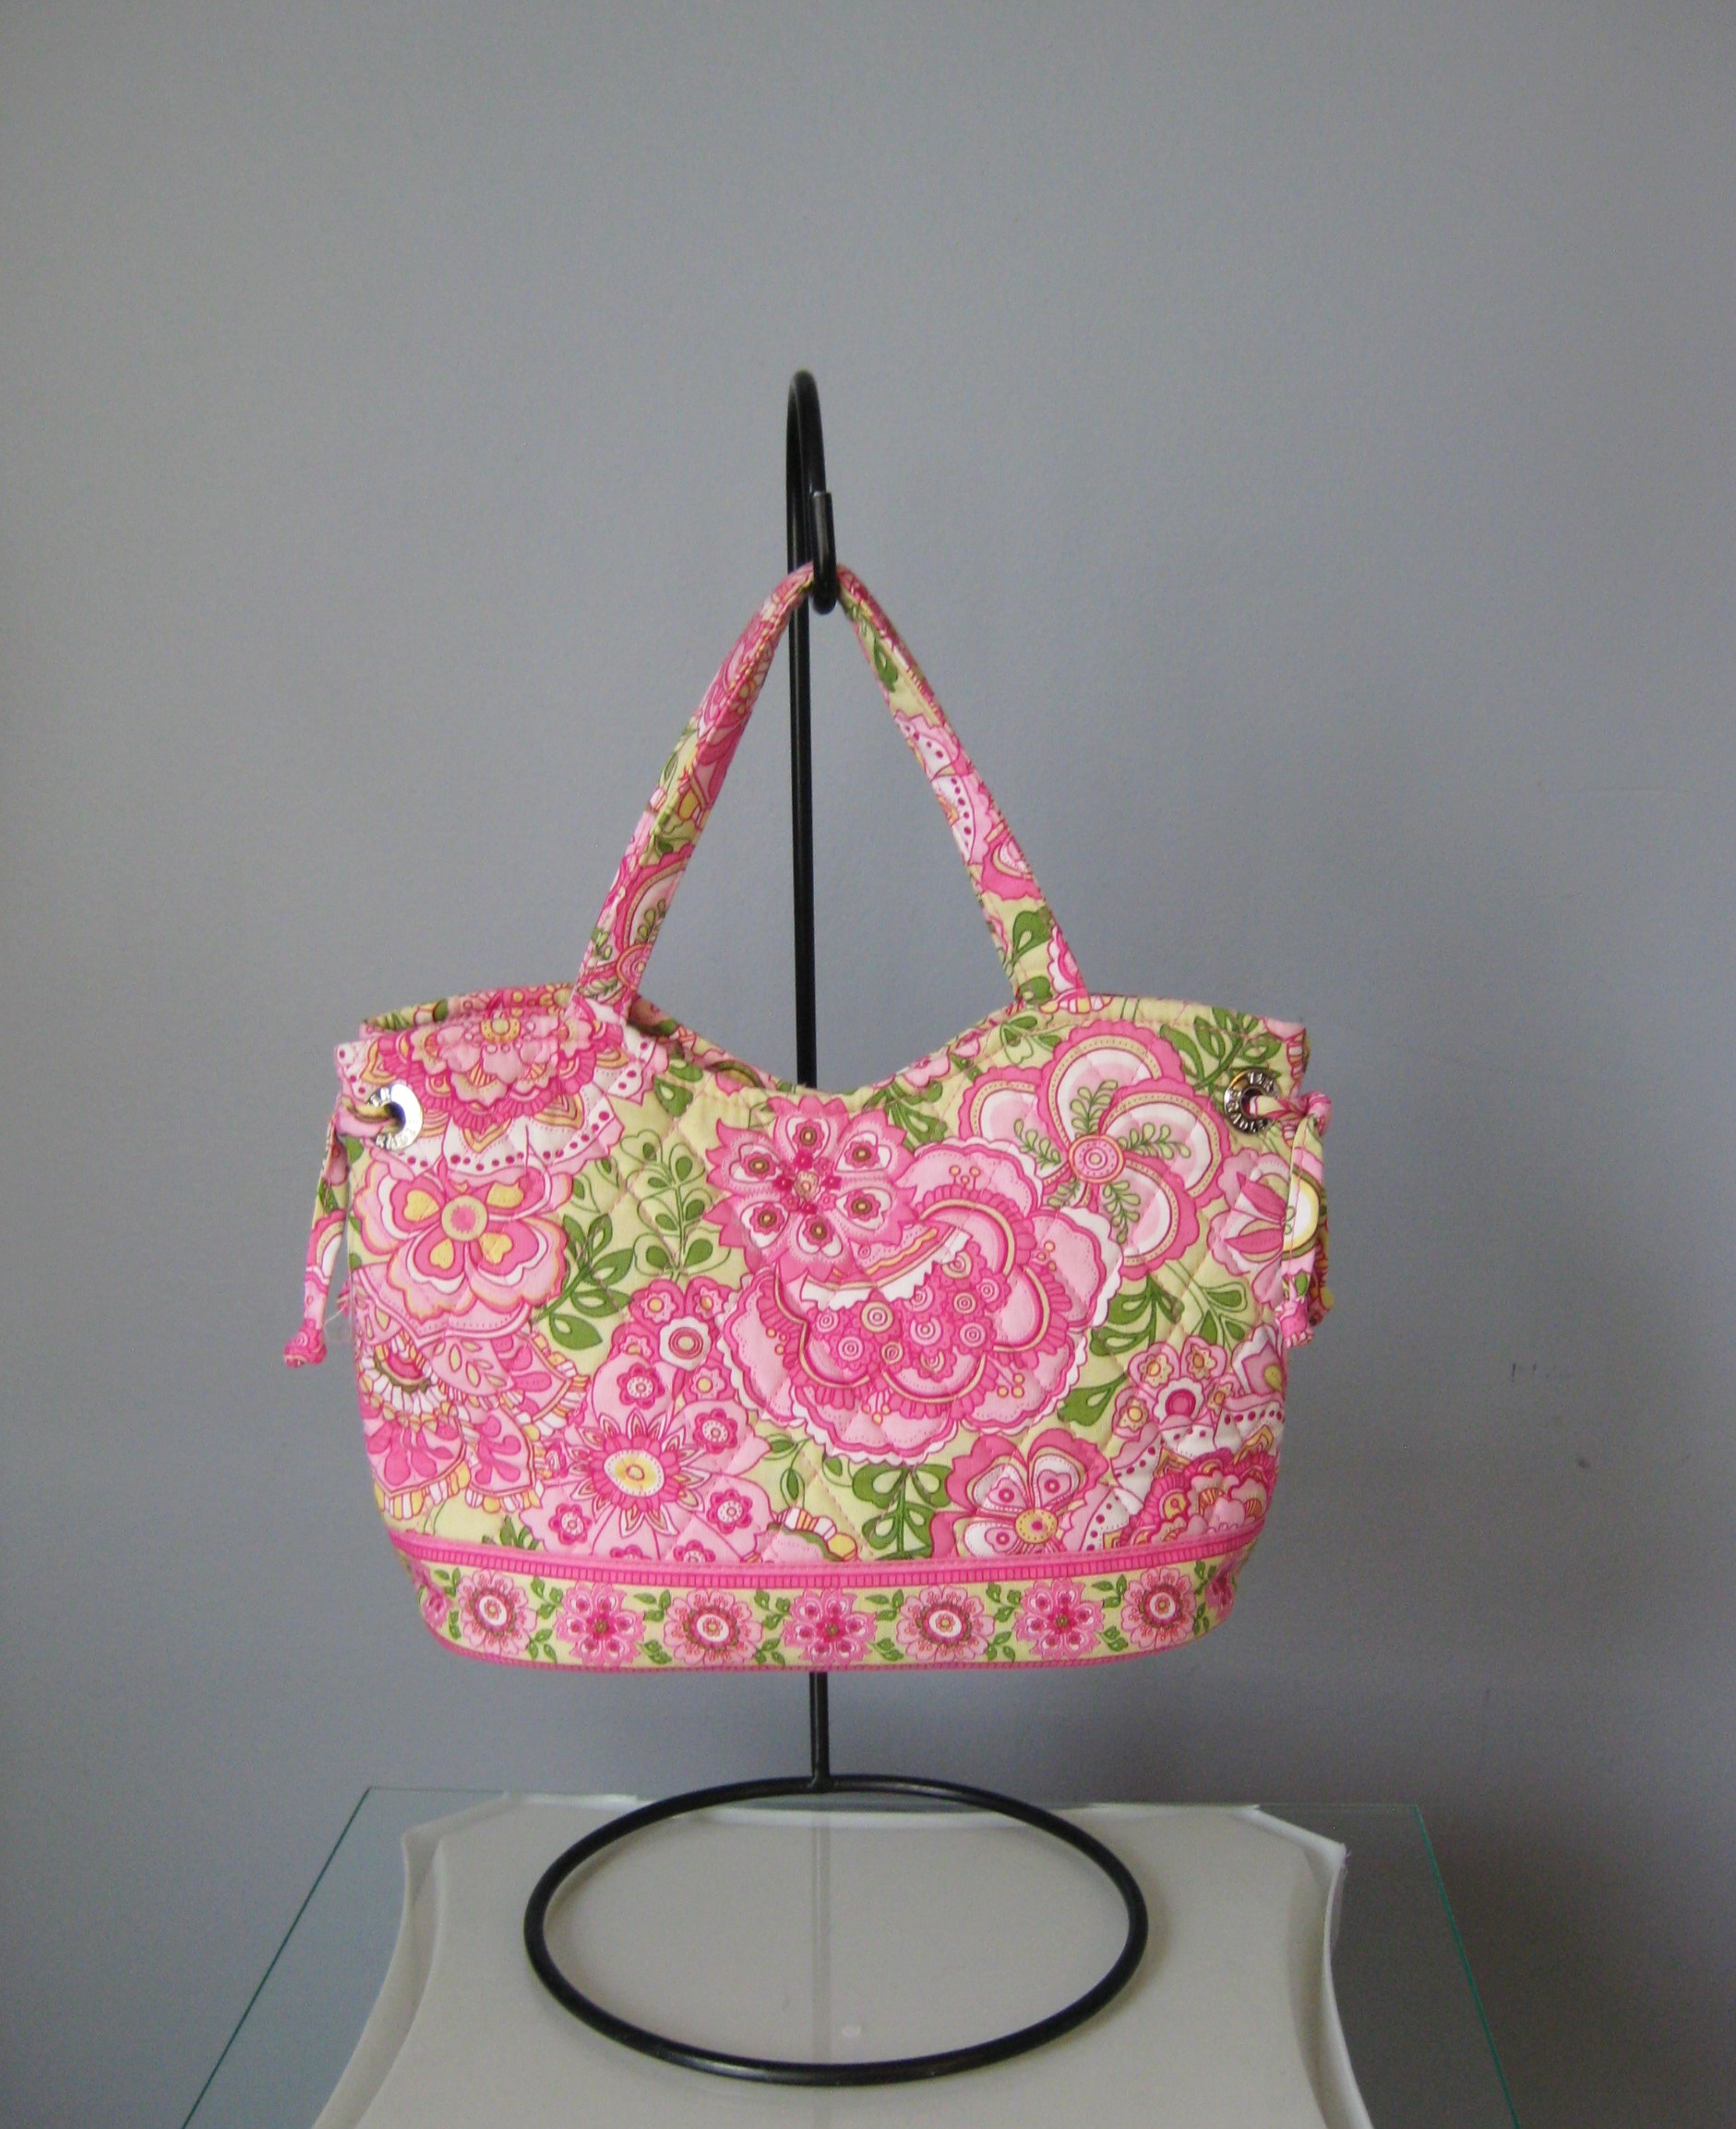 Foral print on this cute quilted cotton shoulder bag from Vera Bradley<br /> Double handles, open top, roomy interior with 2 slip pockets<br /> Width: 10in<br /> Height: 7.75in<br /> Depth: 4.5in<br /> Handle Drop: 5in<br /> <br /> Excellent condition!<br /> Thanks for looking!